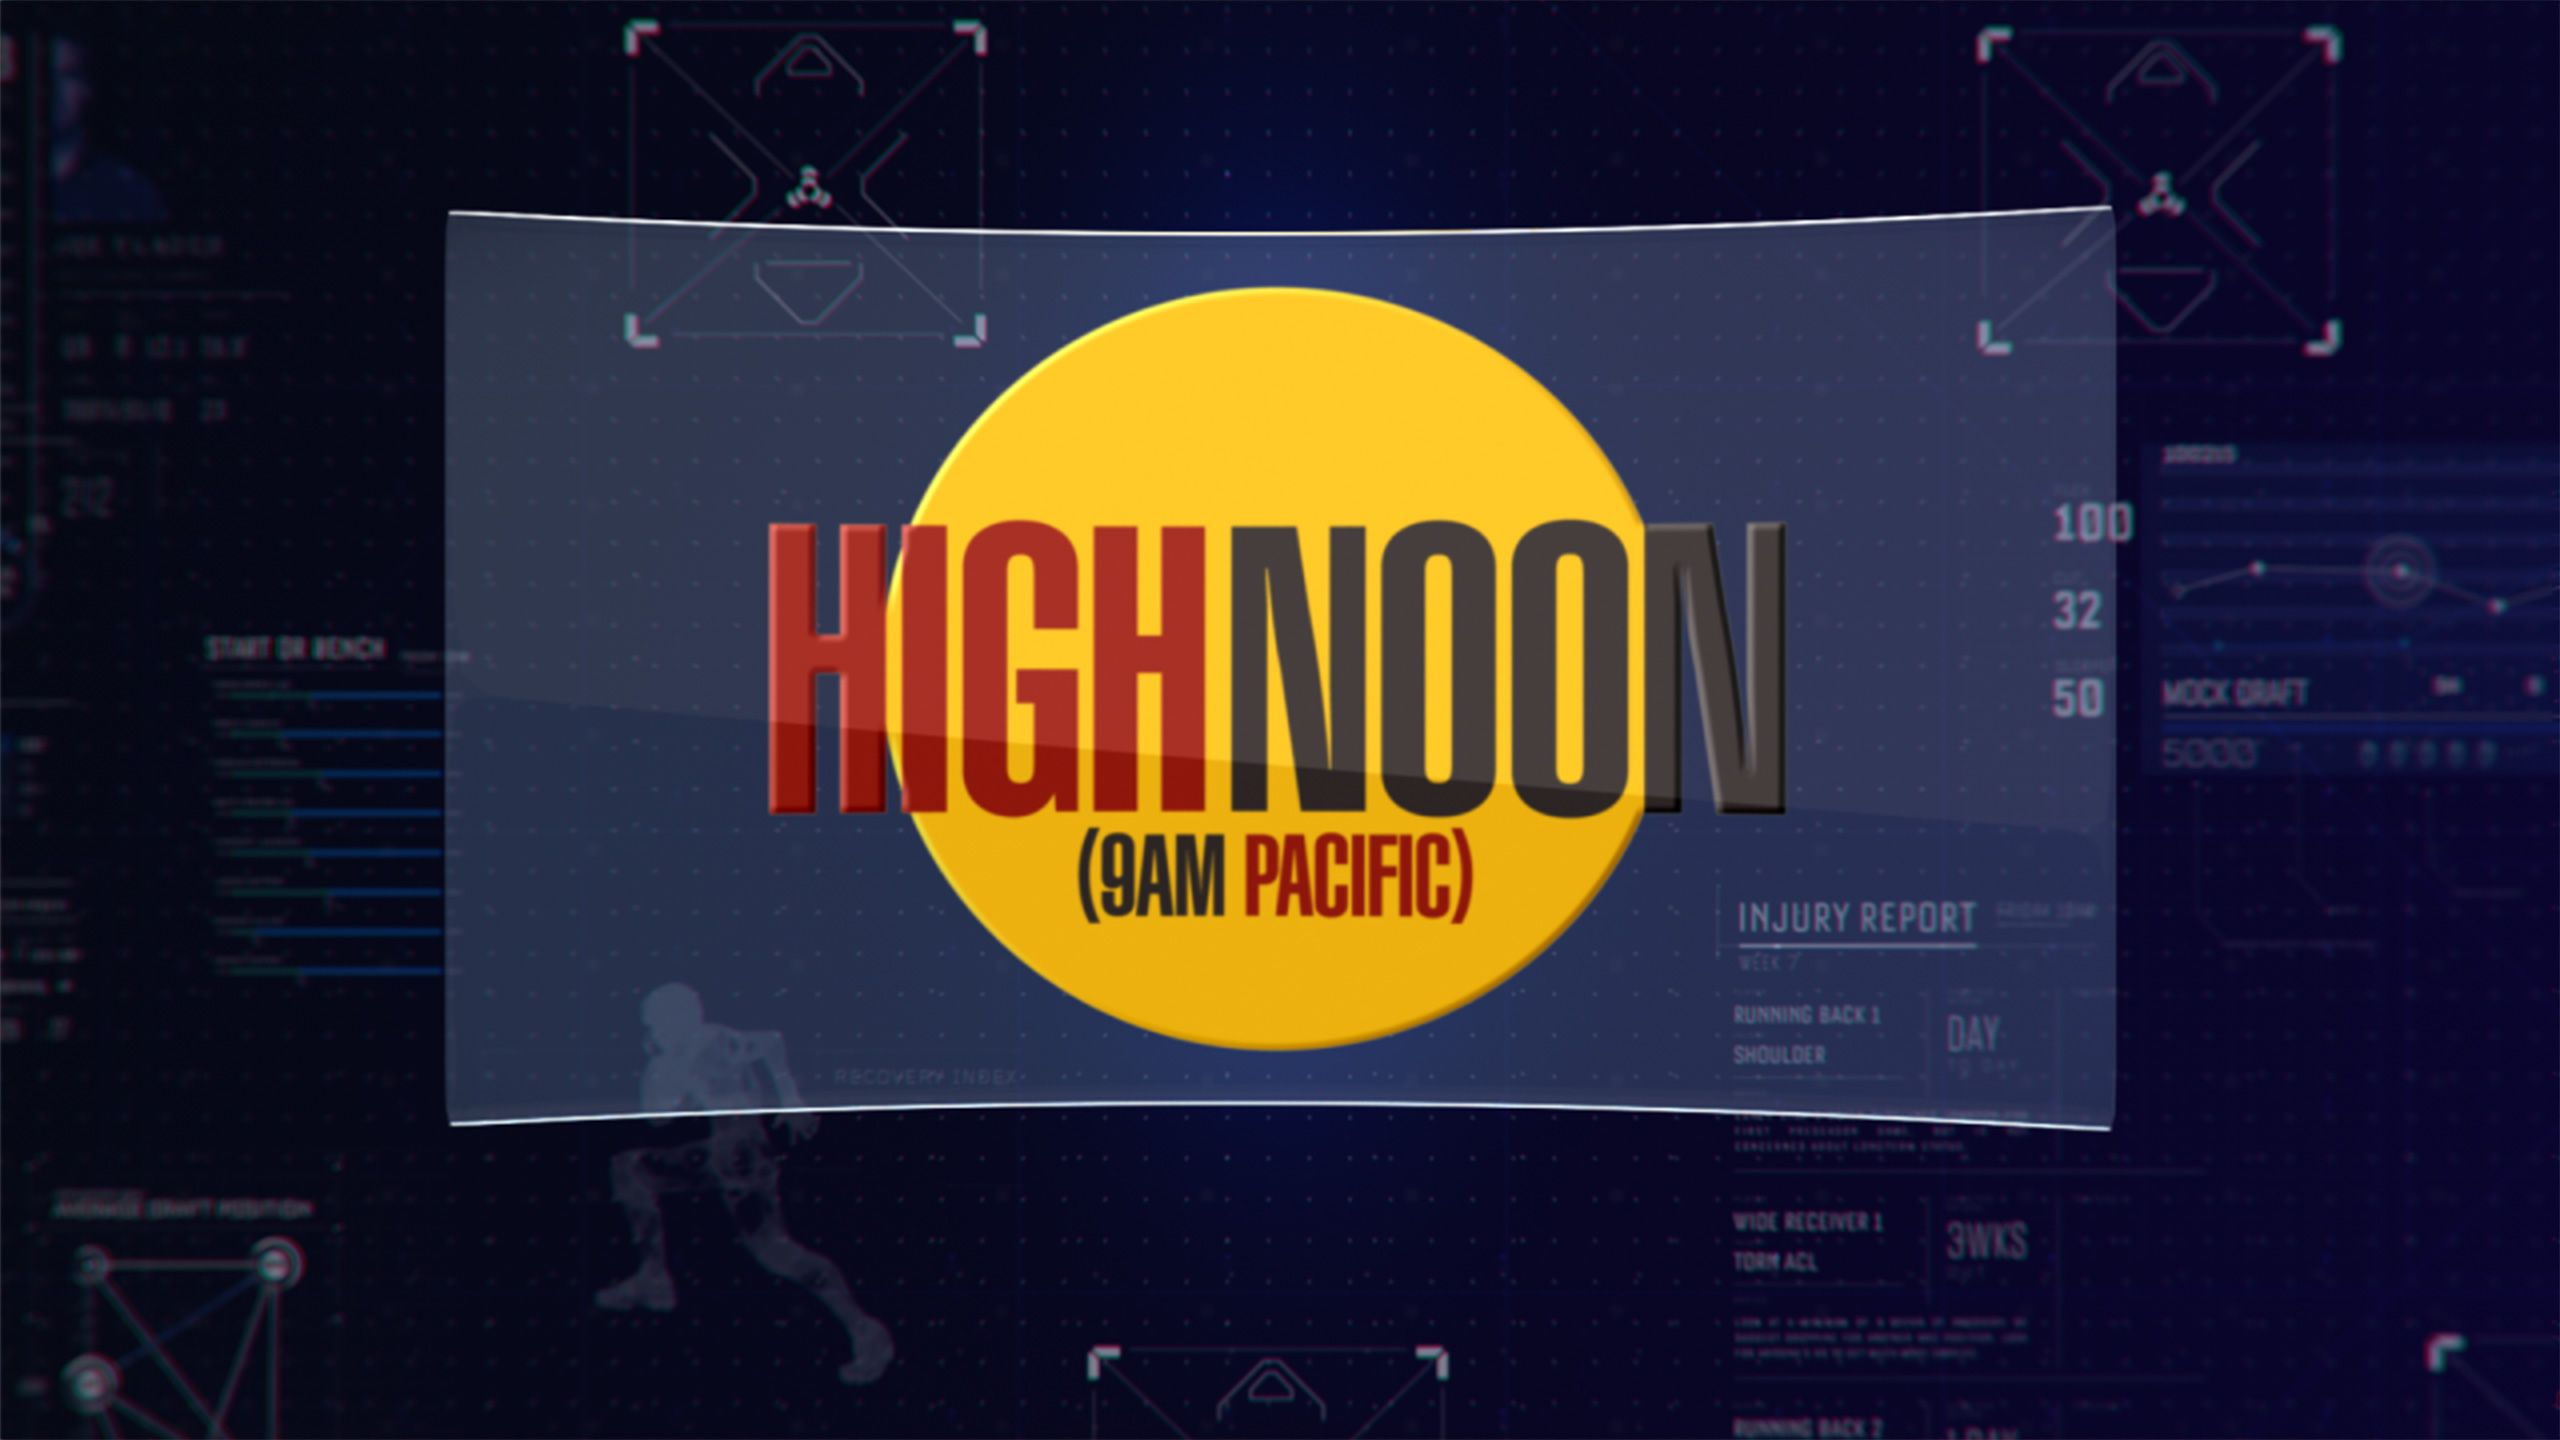 Tue 8/14 - HIGH NOON (9am Pacific) as Part of The ESPN Fantasy Football Marathon